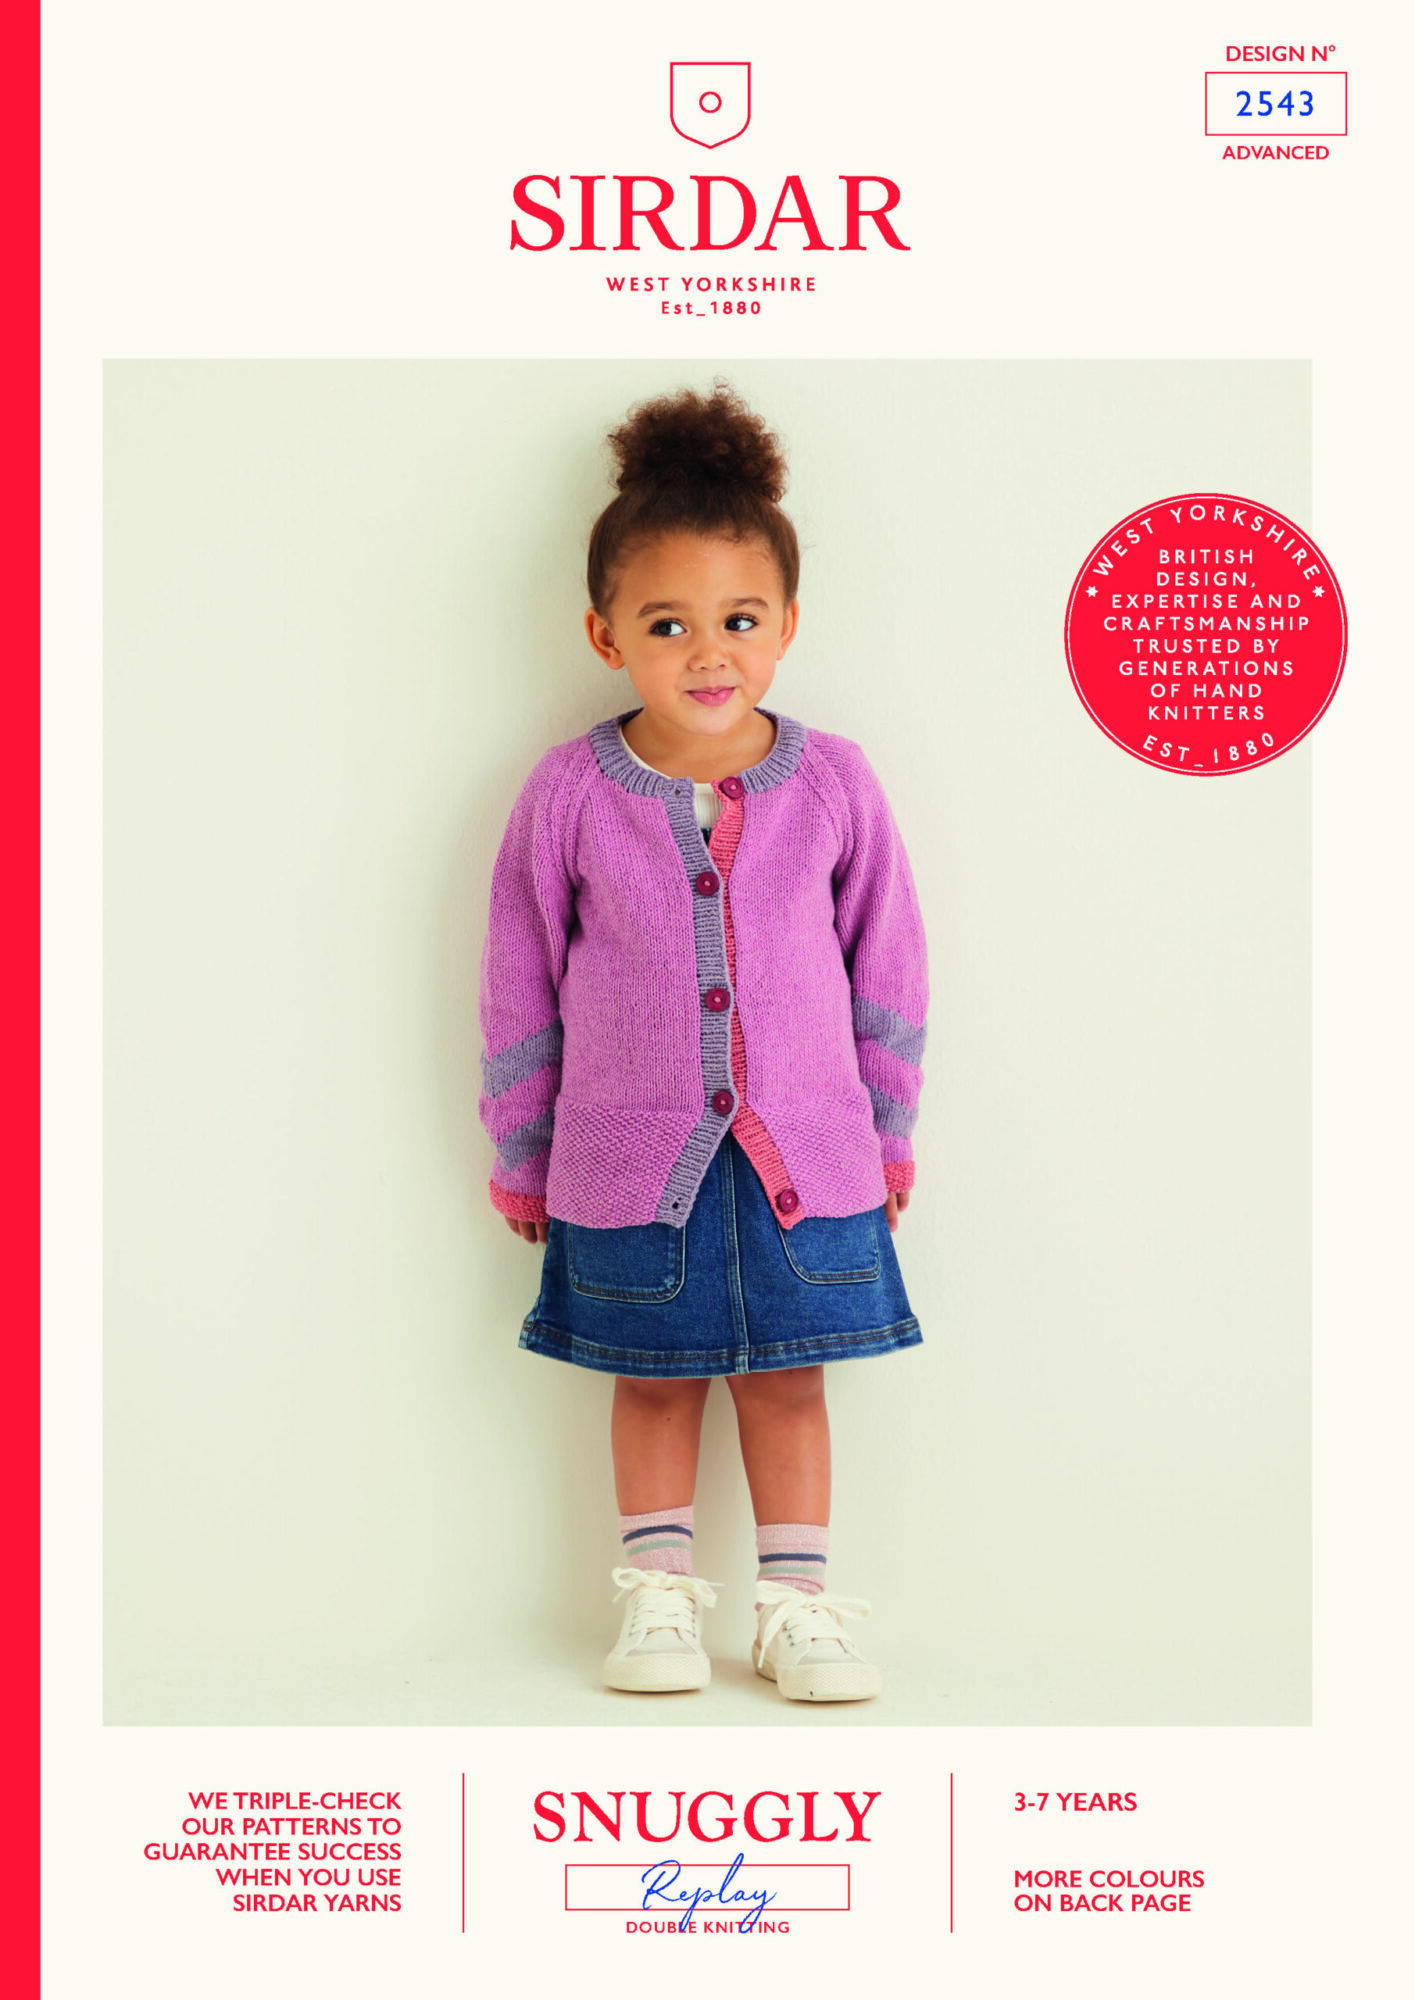 Sirdar Pattern Replay 2543 (Download) product image